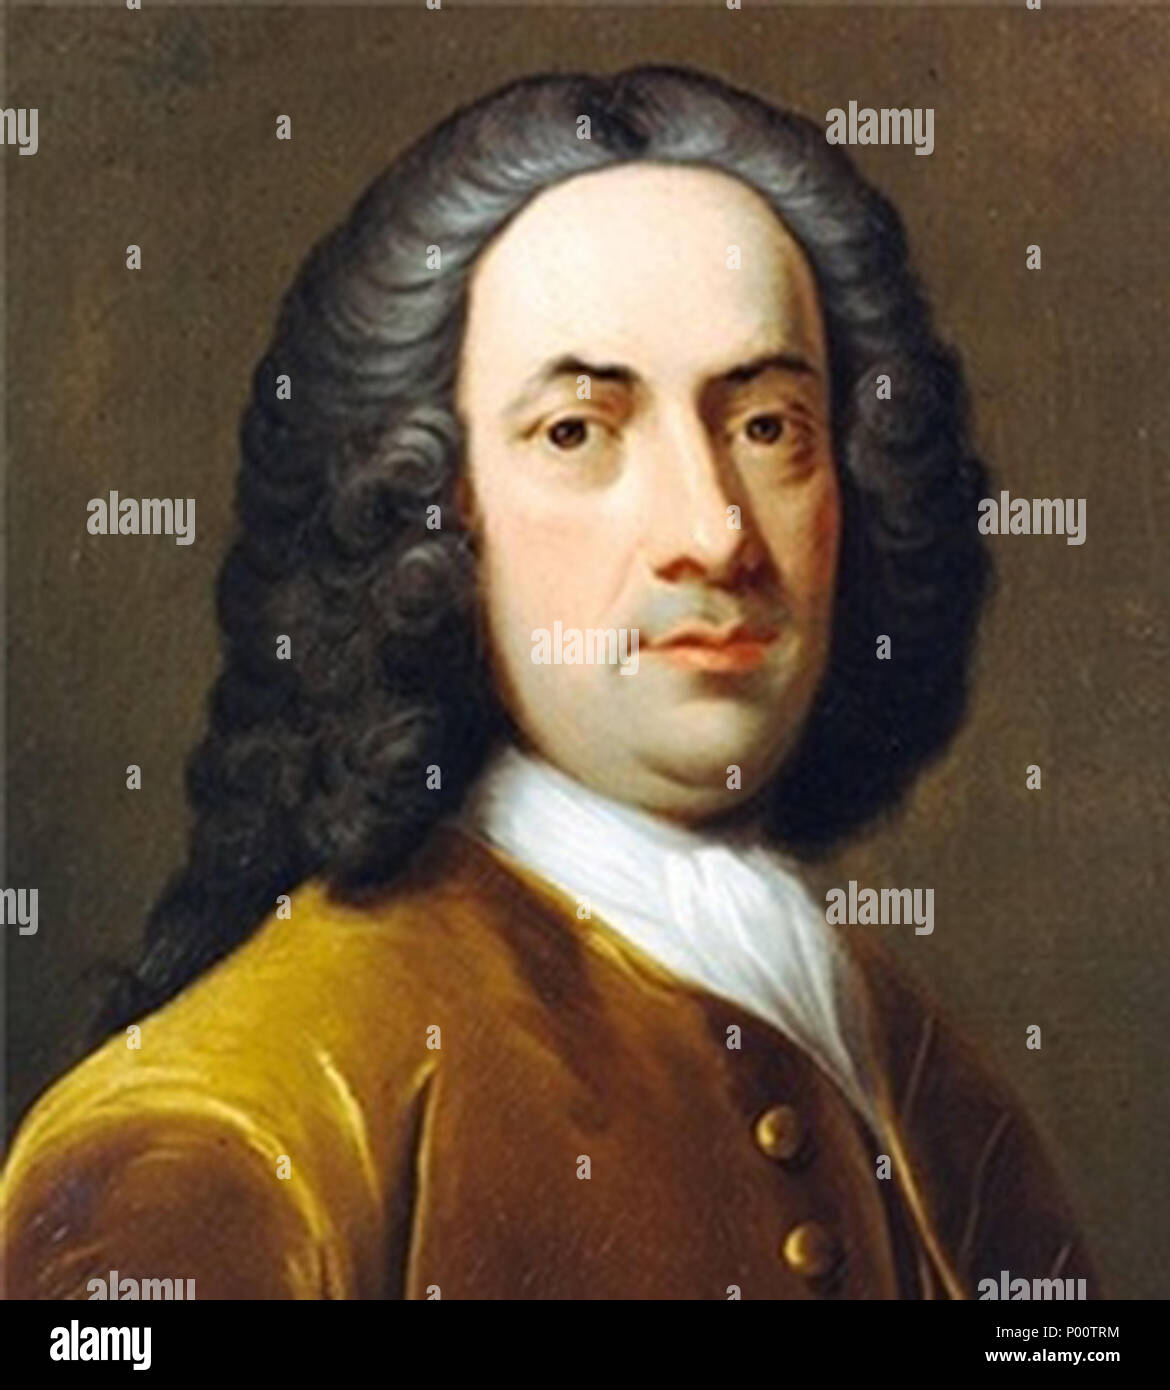 English: This portrait of obstetrician William Smellie (1697